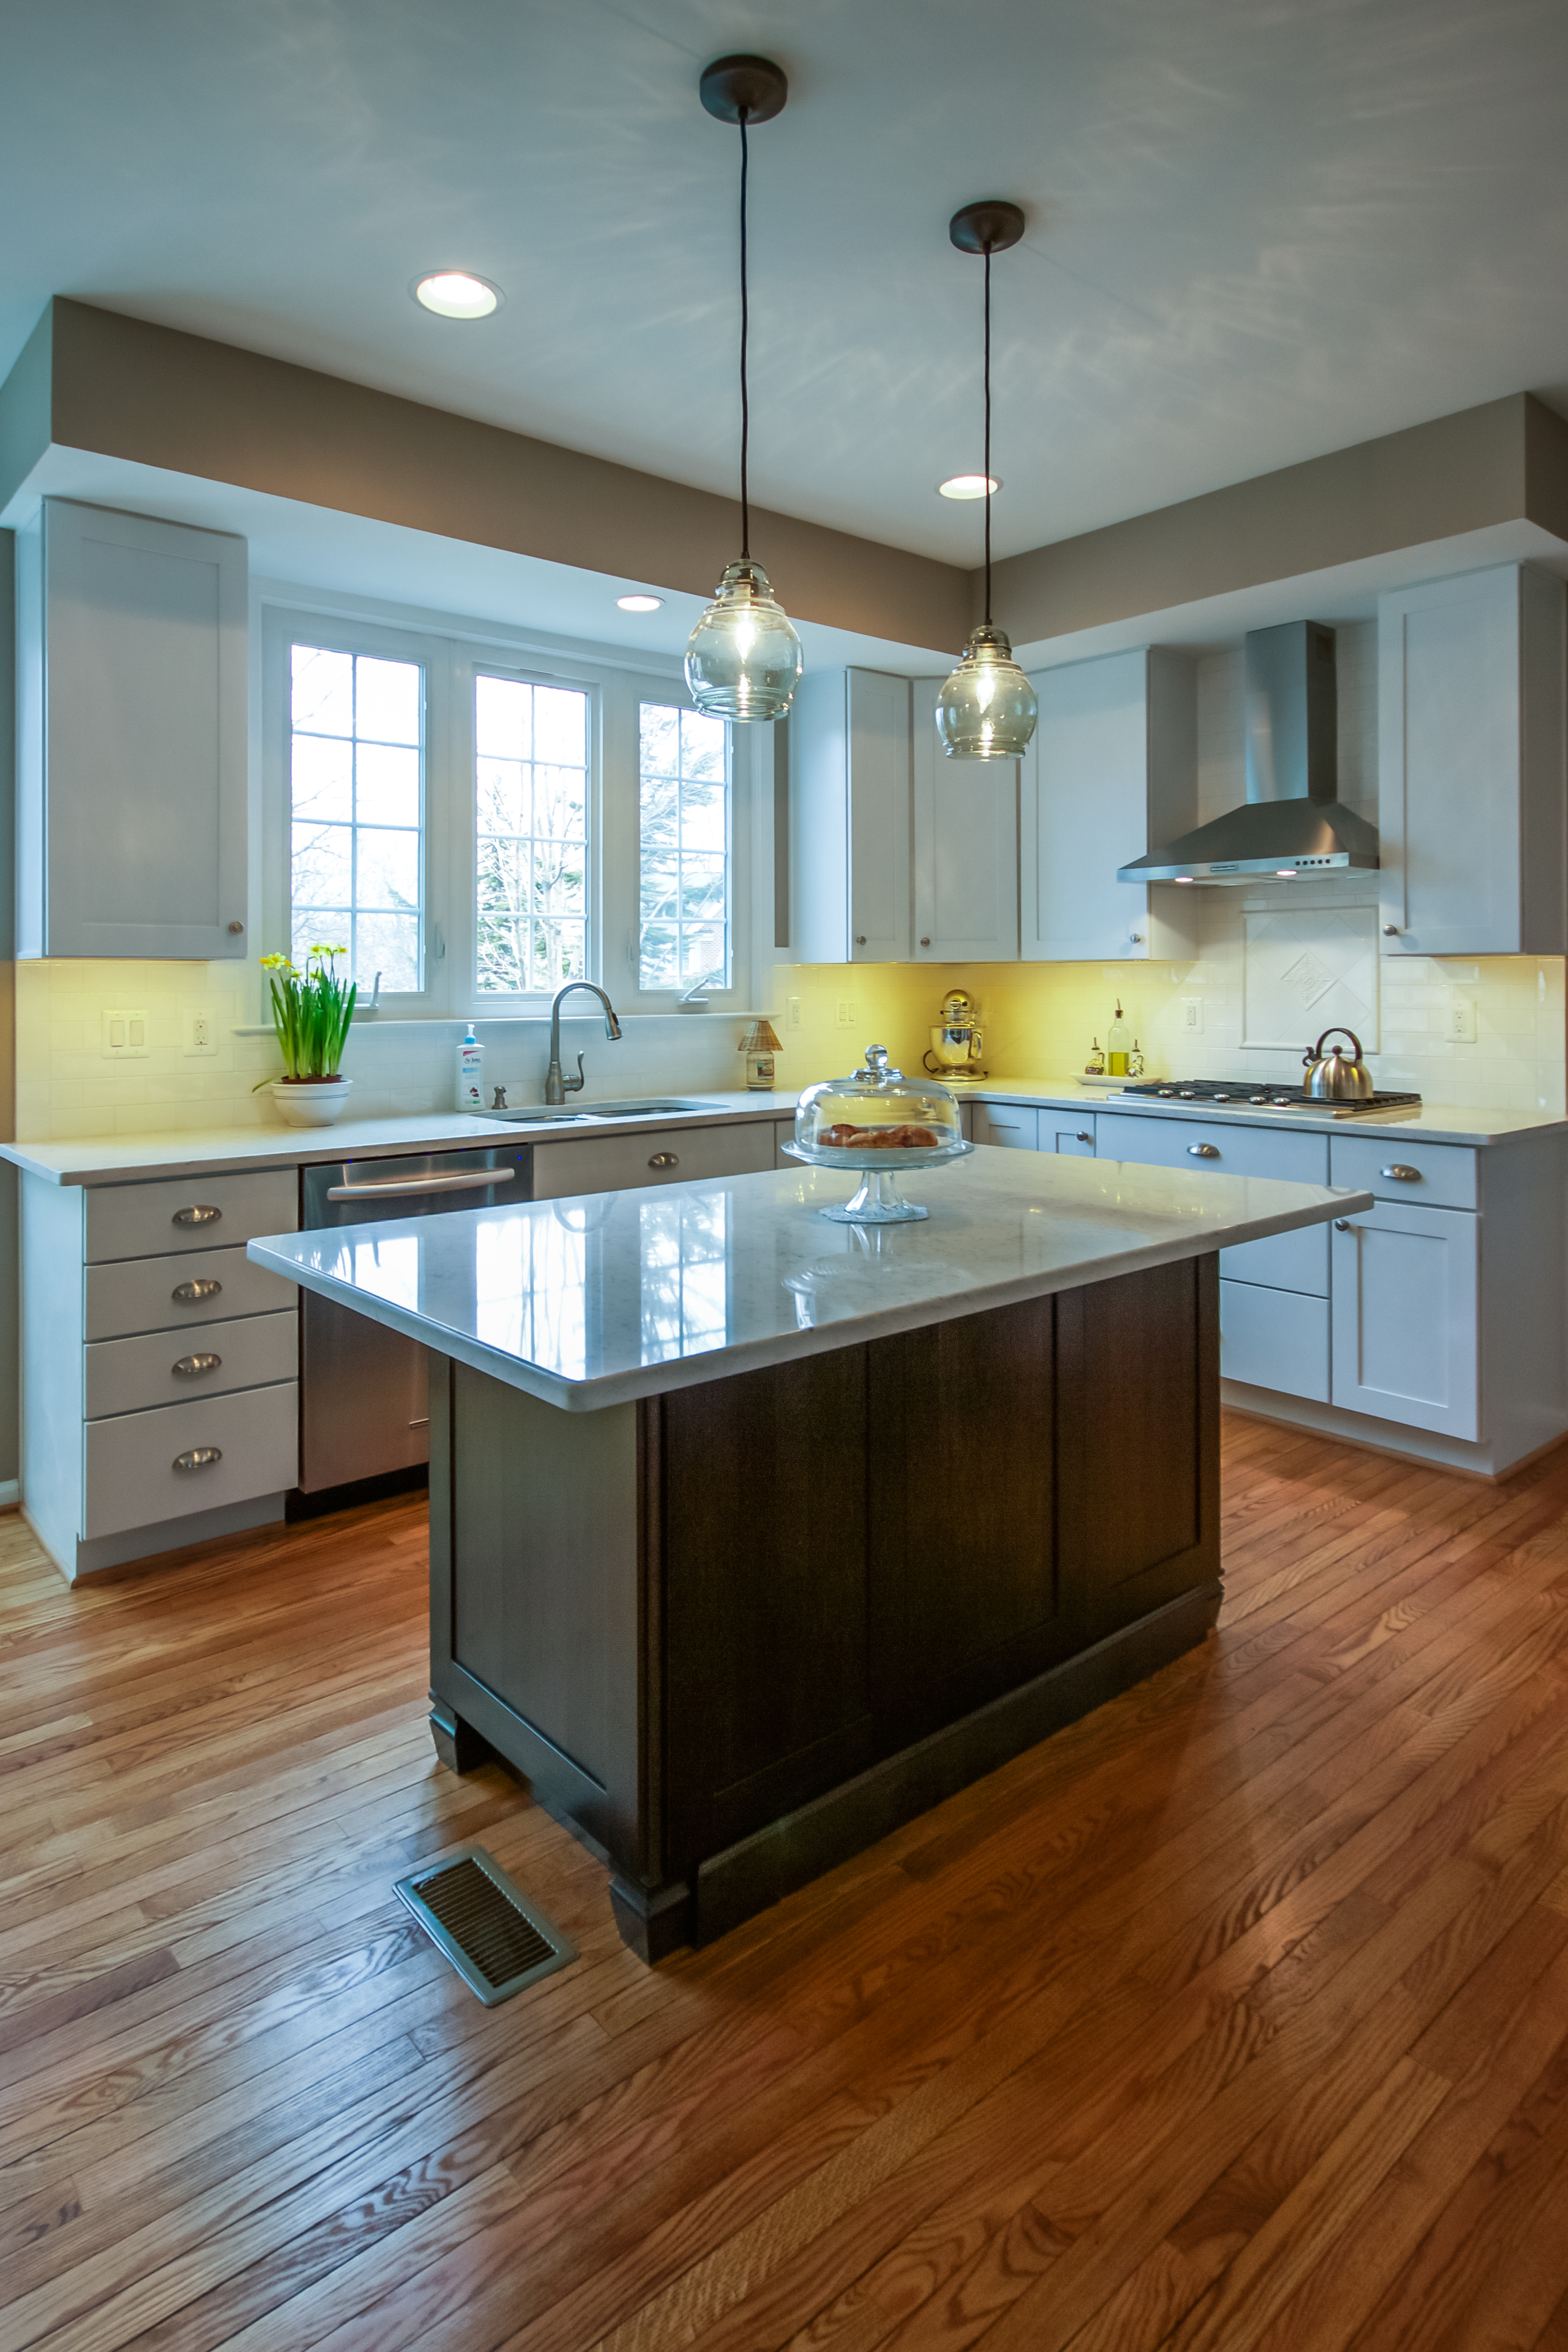 Hunts End Remodeling | Maryland | Read Reviews + Get a Bid | BuildZoom